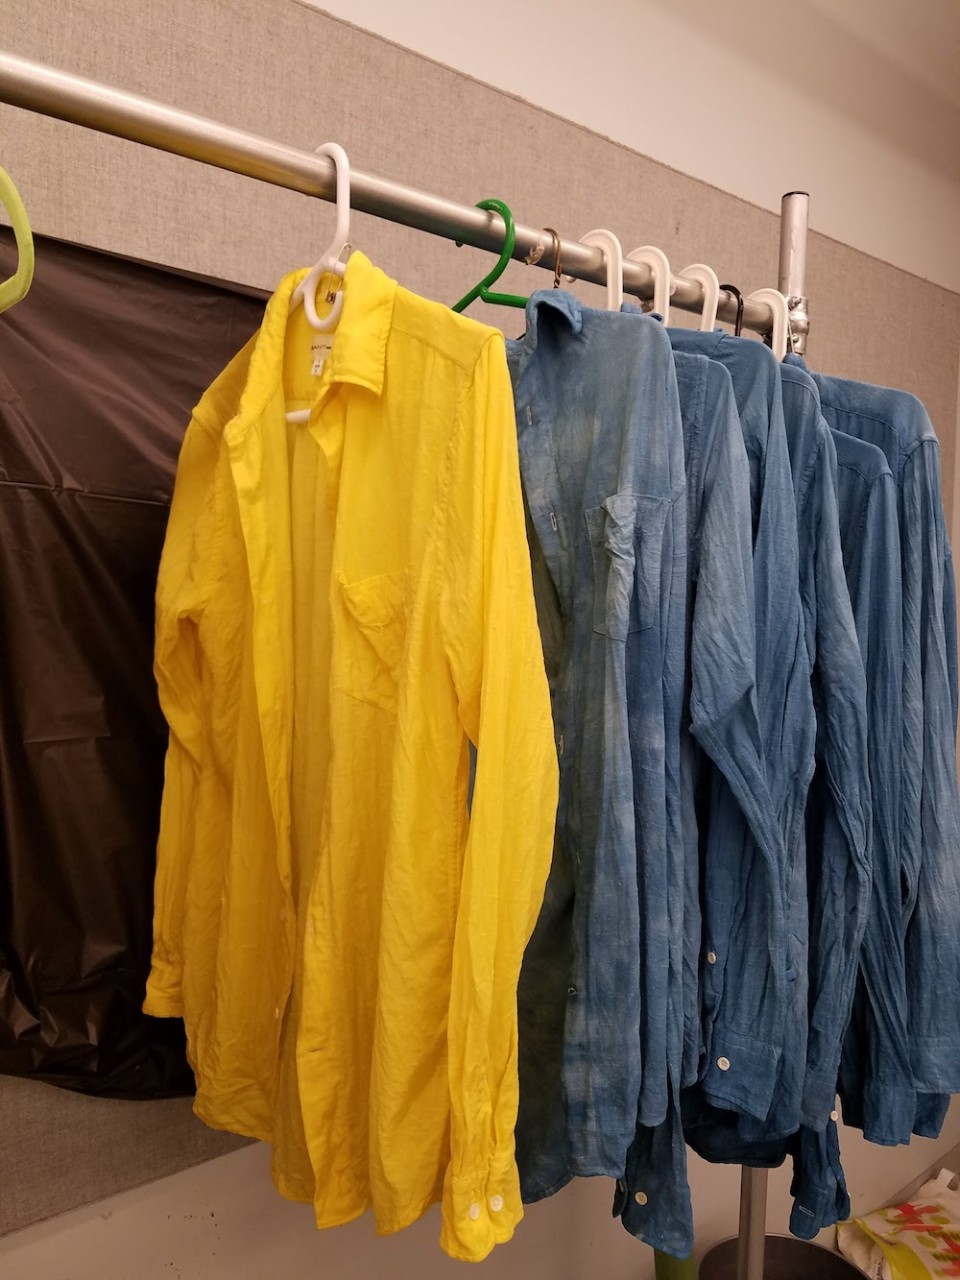 White button-up shirts dyed yellow and blue hang on a clothing rack.